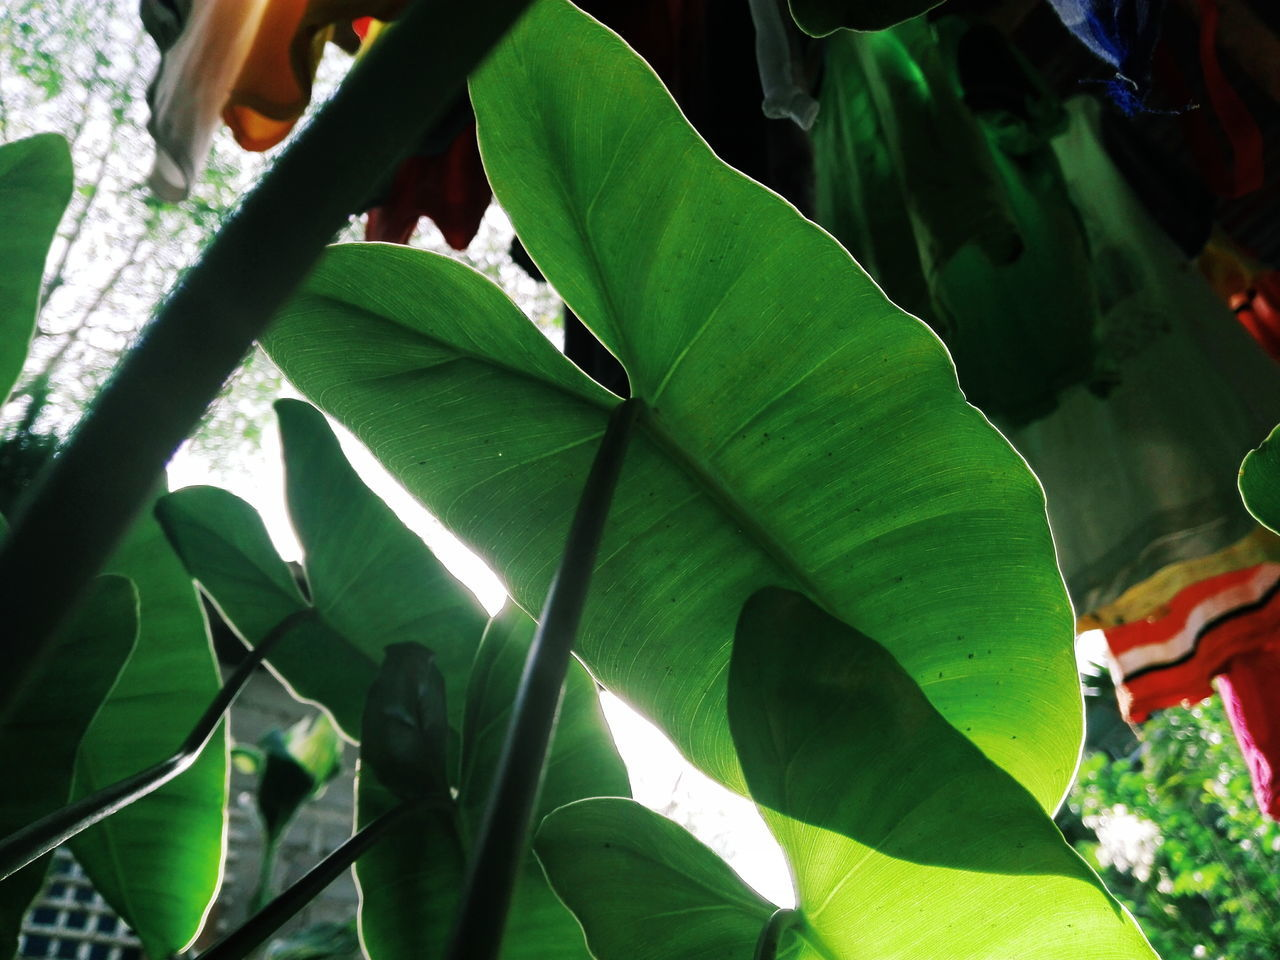 leaf, green color, growth, nature, day, outdoors, no people, beauty in nature, banana leaf, plant, banana tree, close-up, freshness, tree, fragility